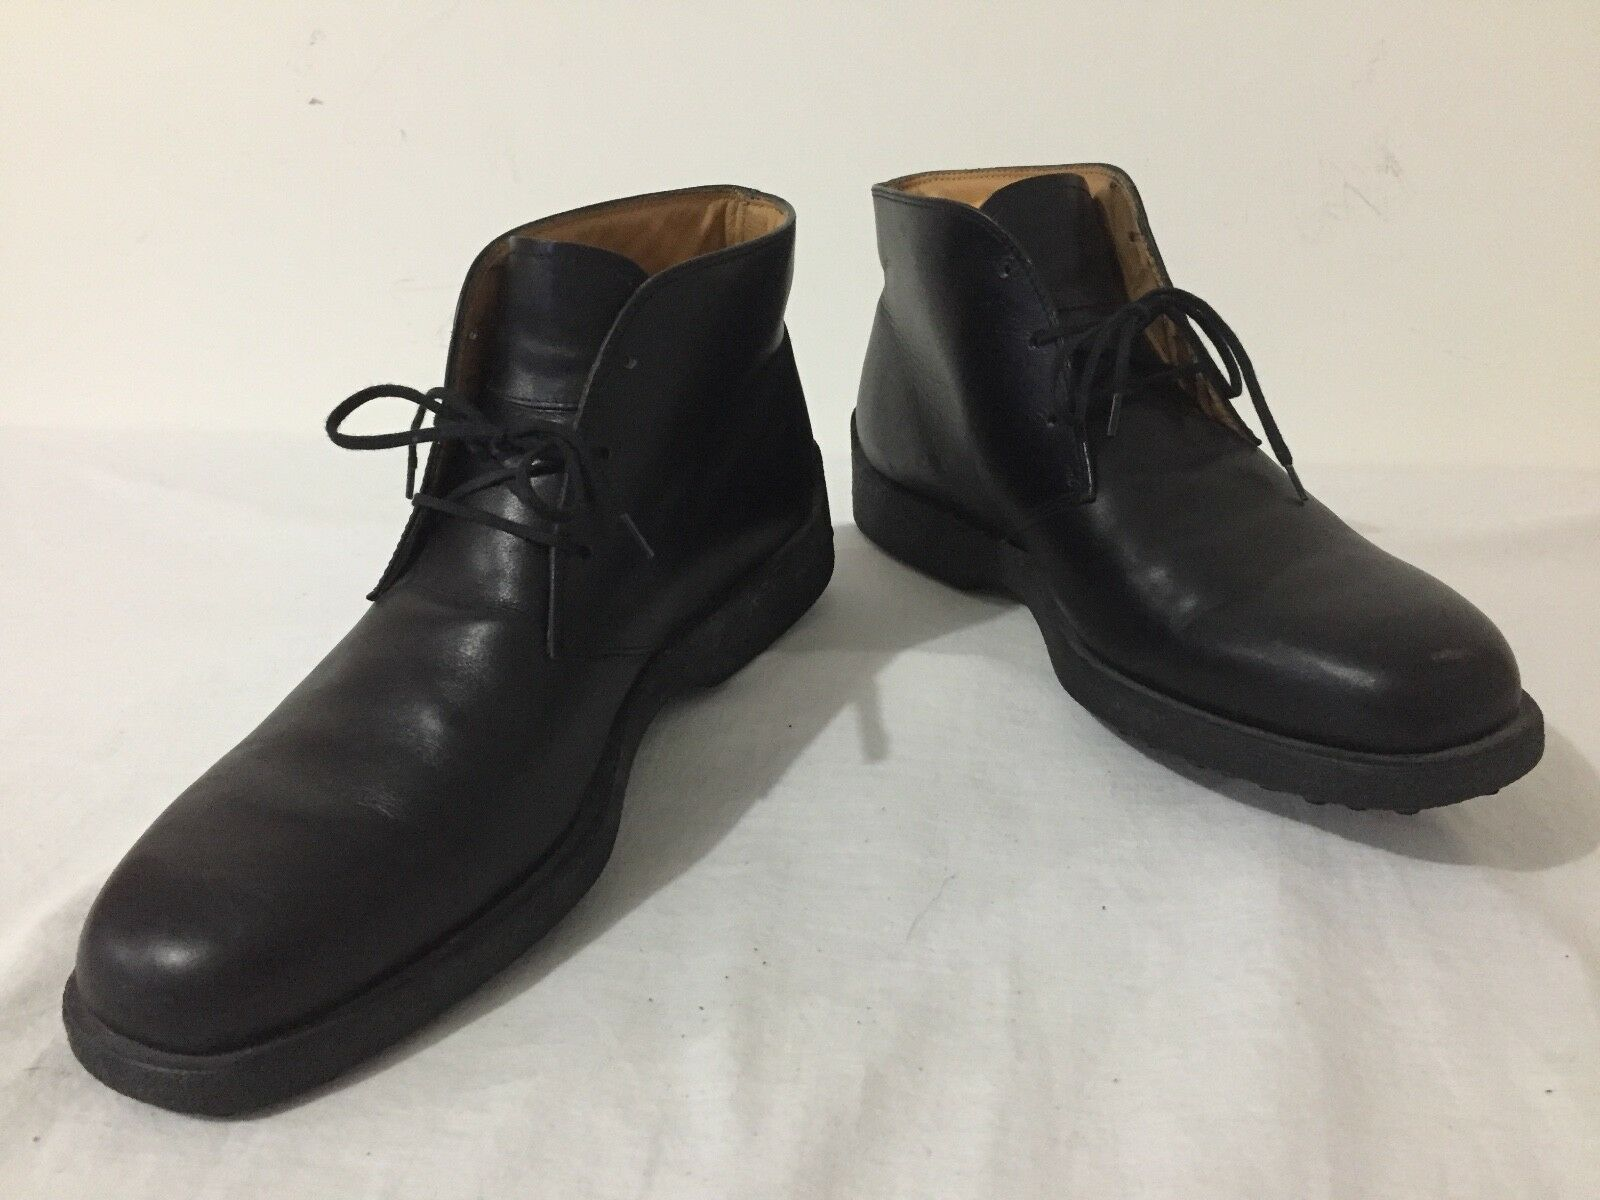 TOD'S Ankle Boots Black Leather Marked Size 10 UK (US 11)